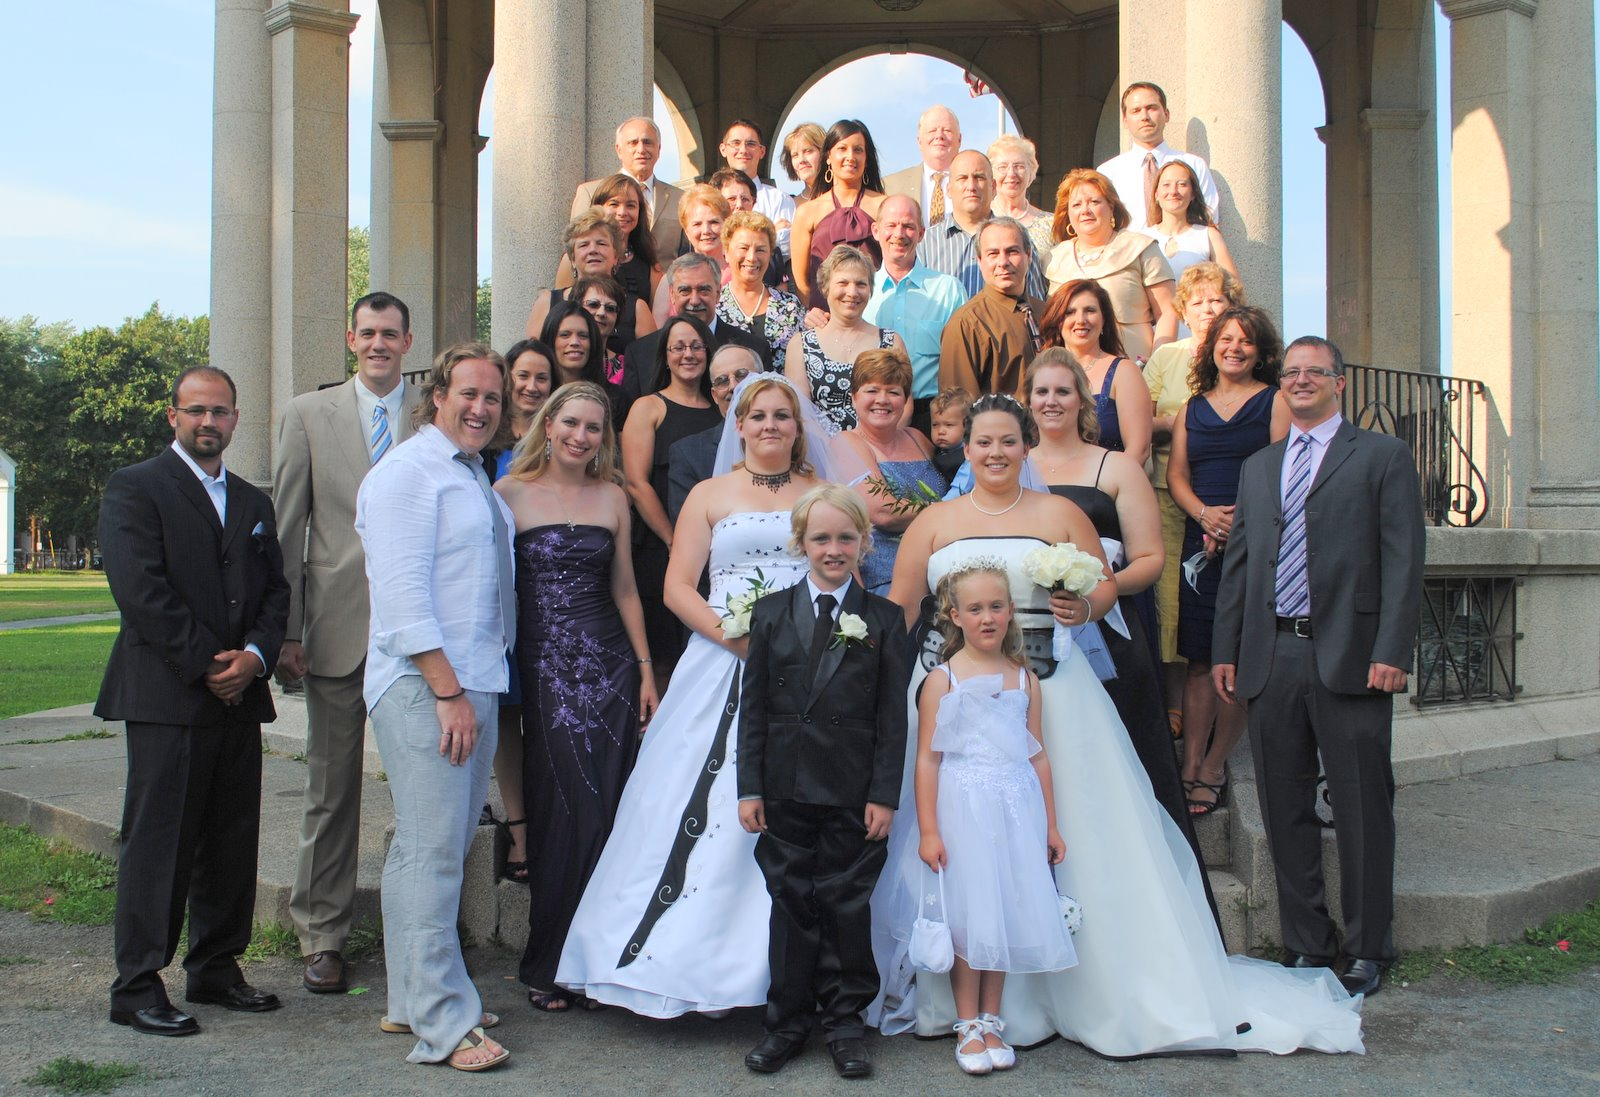 Modern Family Wedding This Took Place Here Fall These Guests Were So Pleased With Their In The Library That They Sent Us Photos